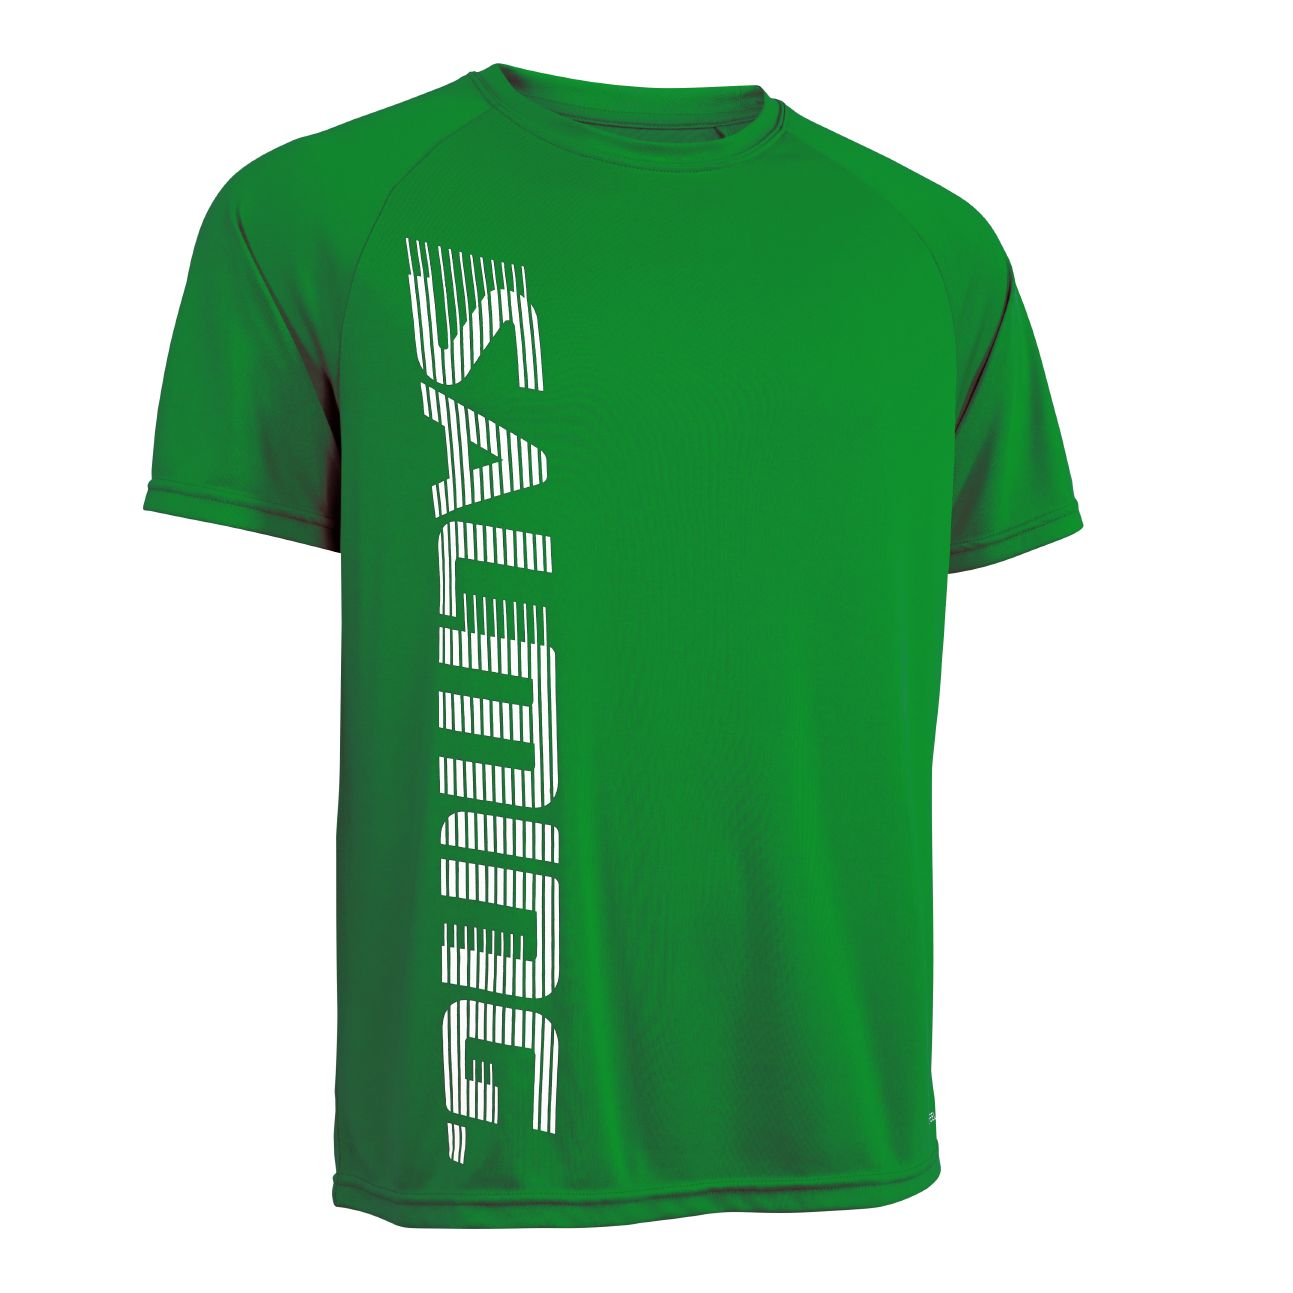 Salming Training Tee 2.0 Modrá, XXXL